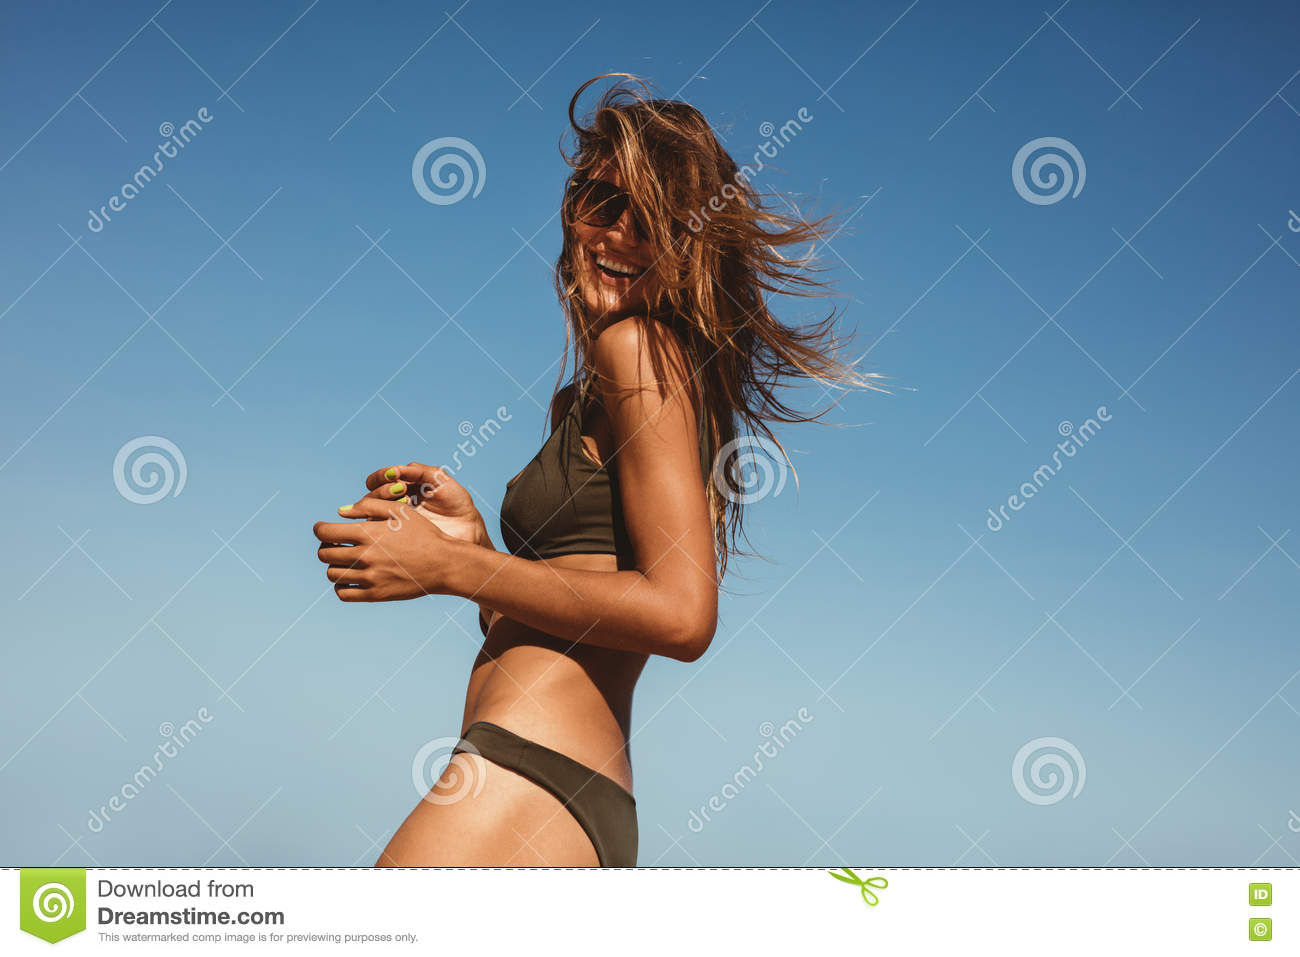 Smiling young model in bikini standing against blue sky